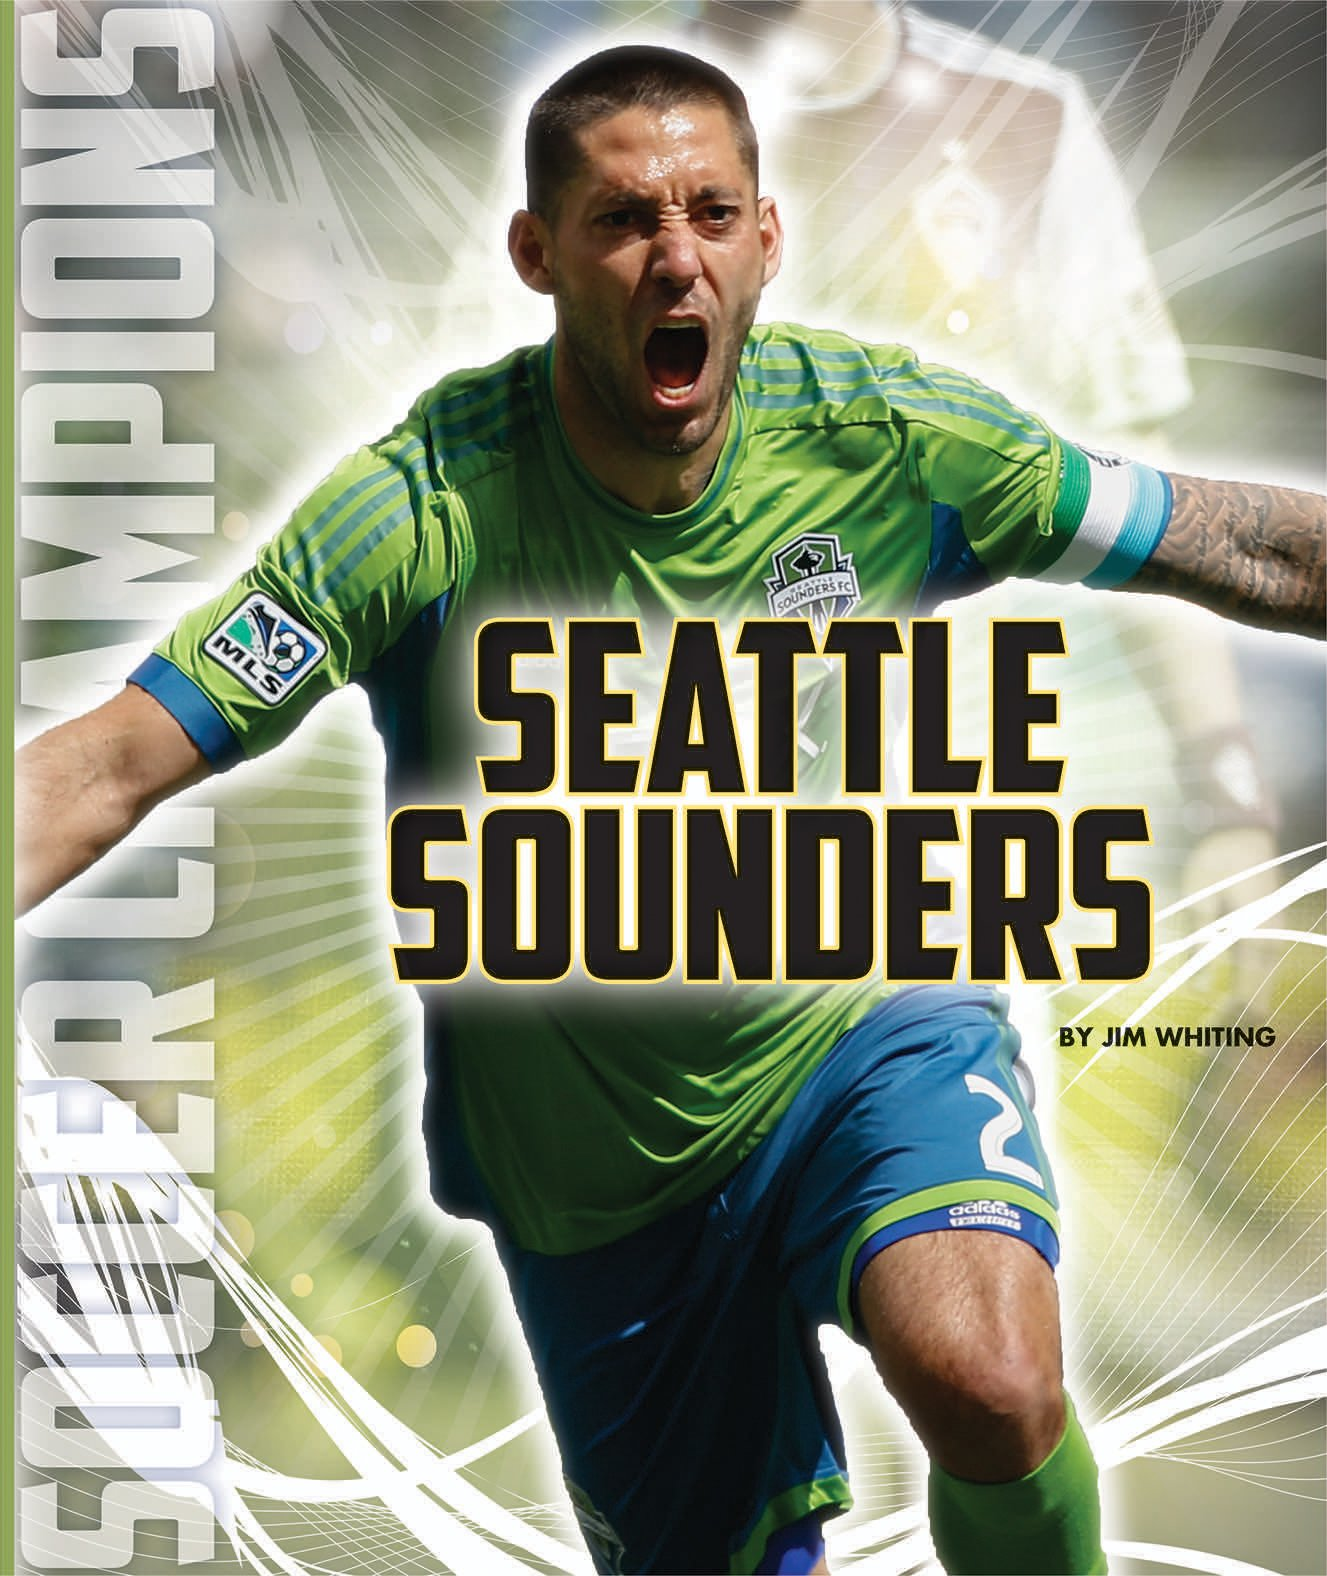 Seattle Sounders (Soccer Champions)